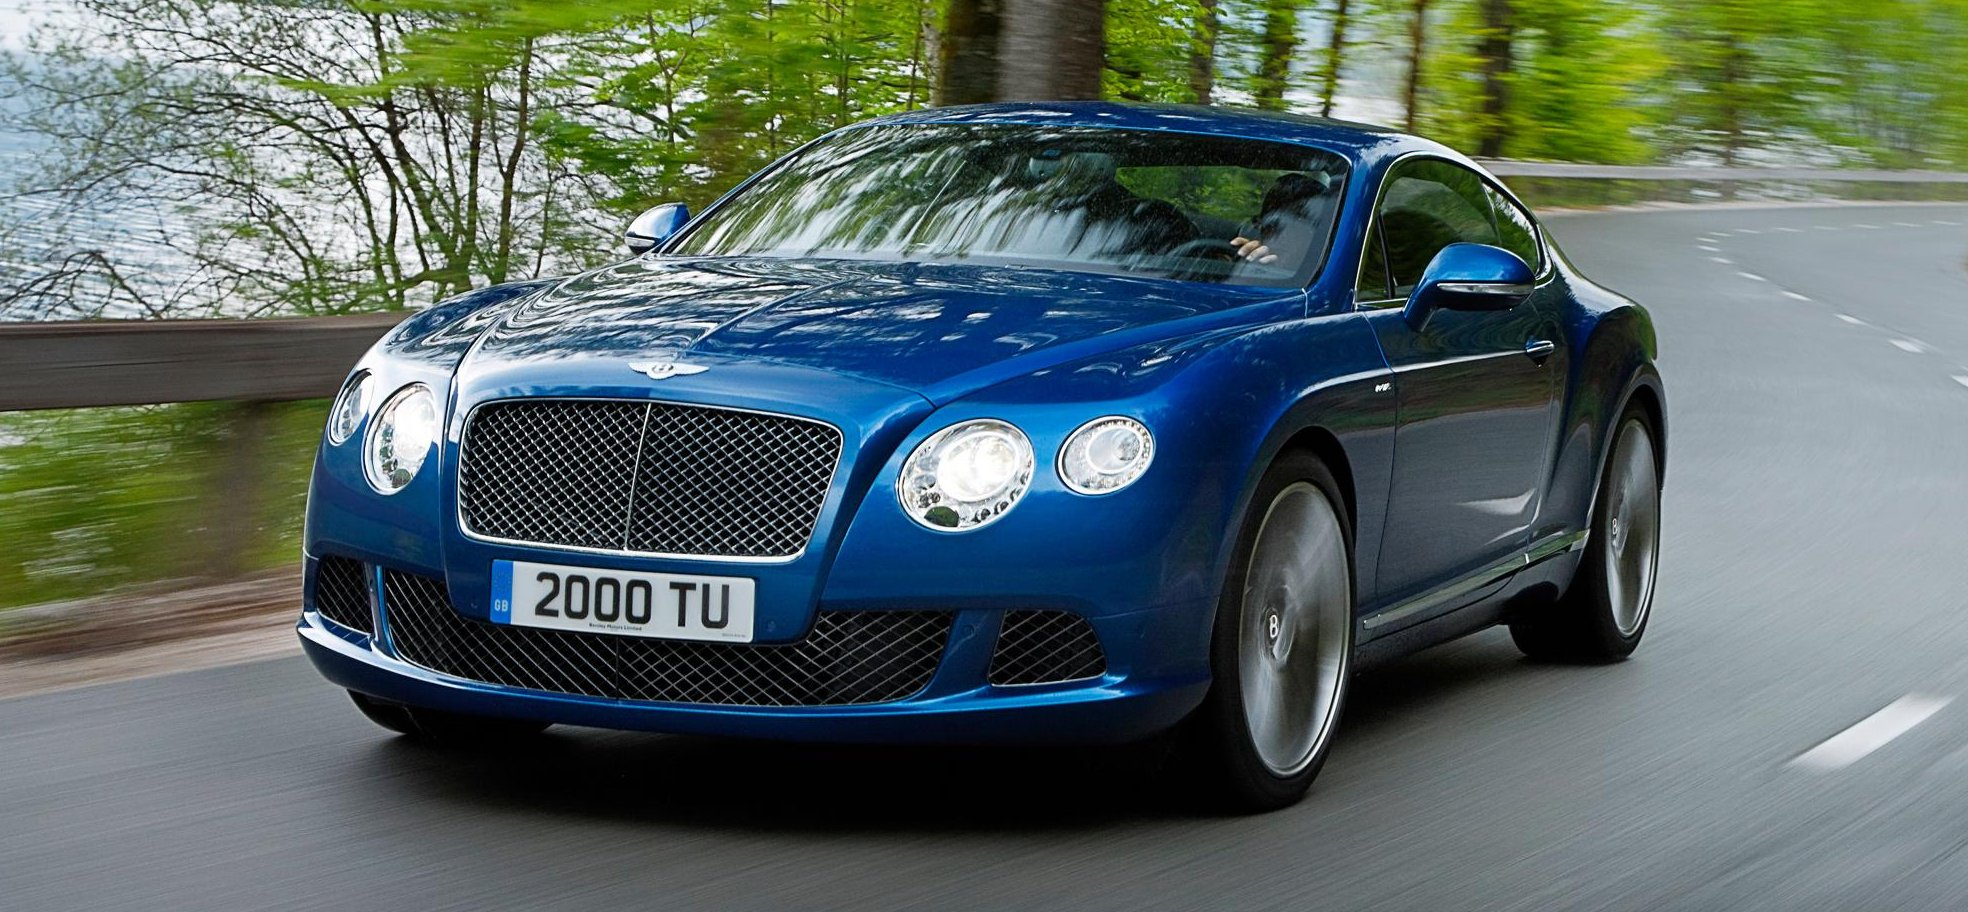 The new Bentley Continental GT Speed takes a bow